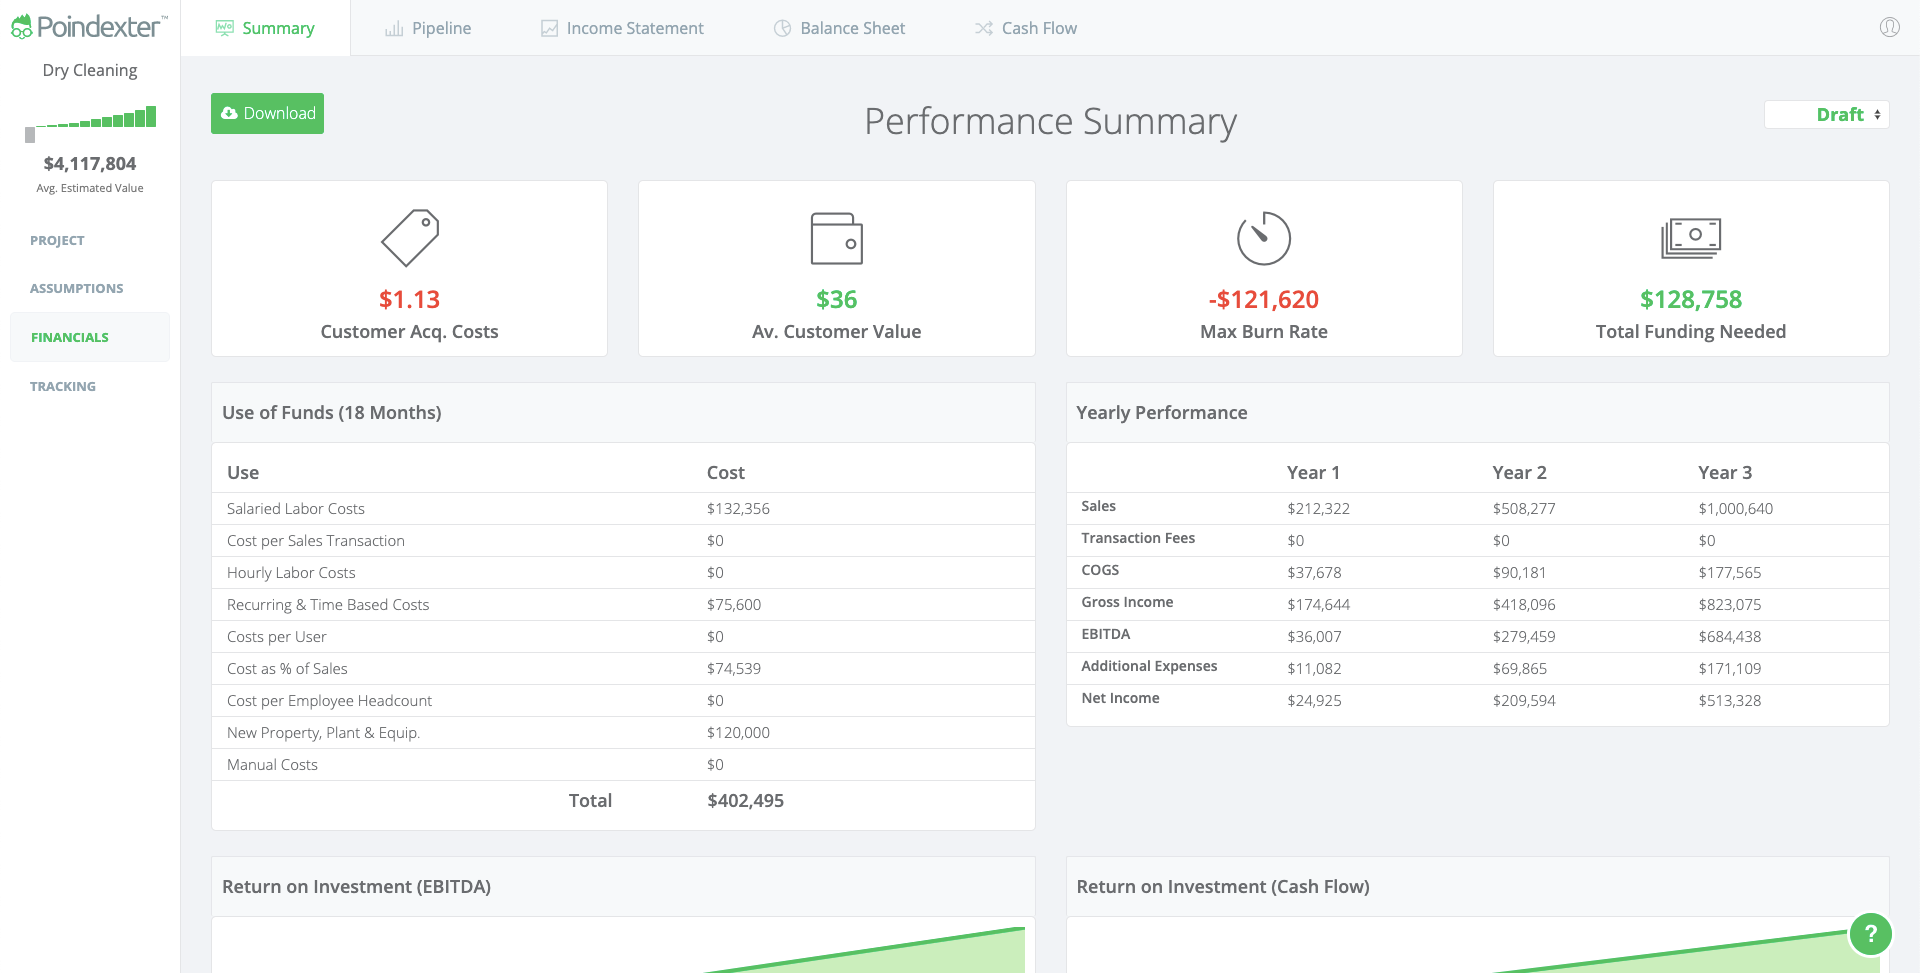 Dry Cleaning Financial Summary Dashboard